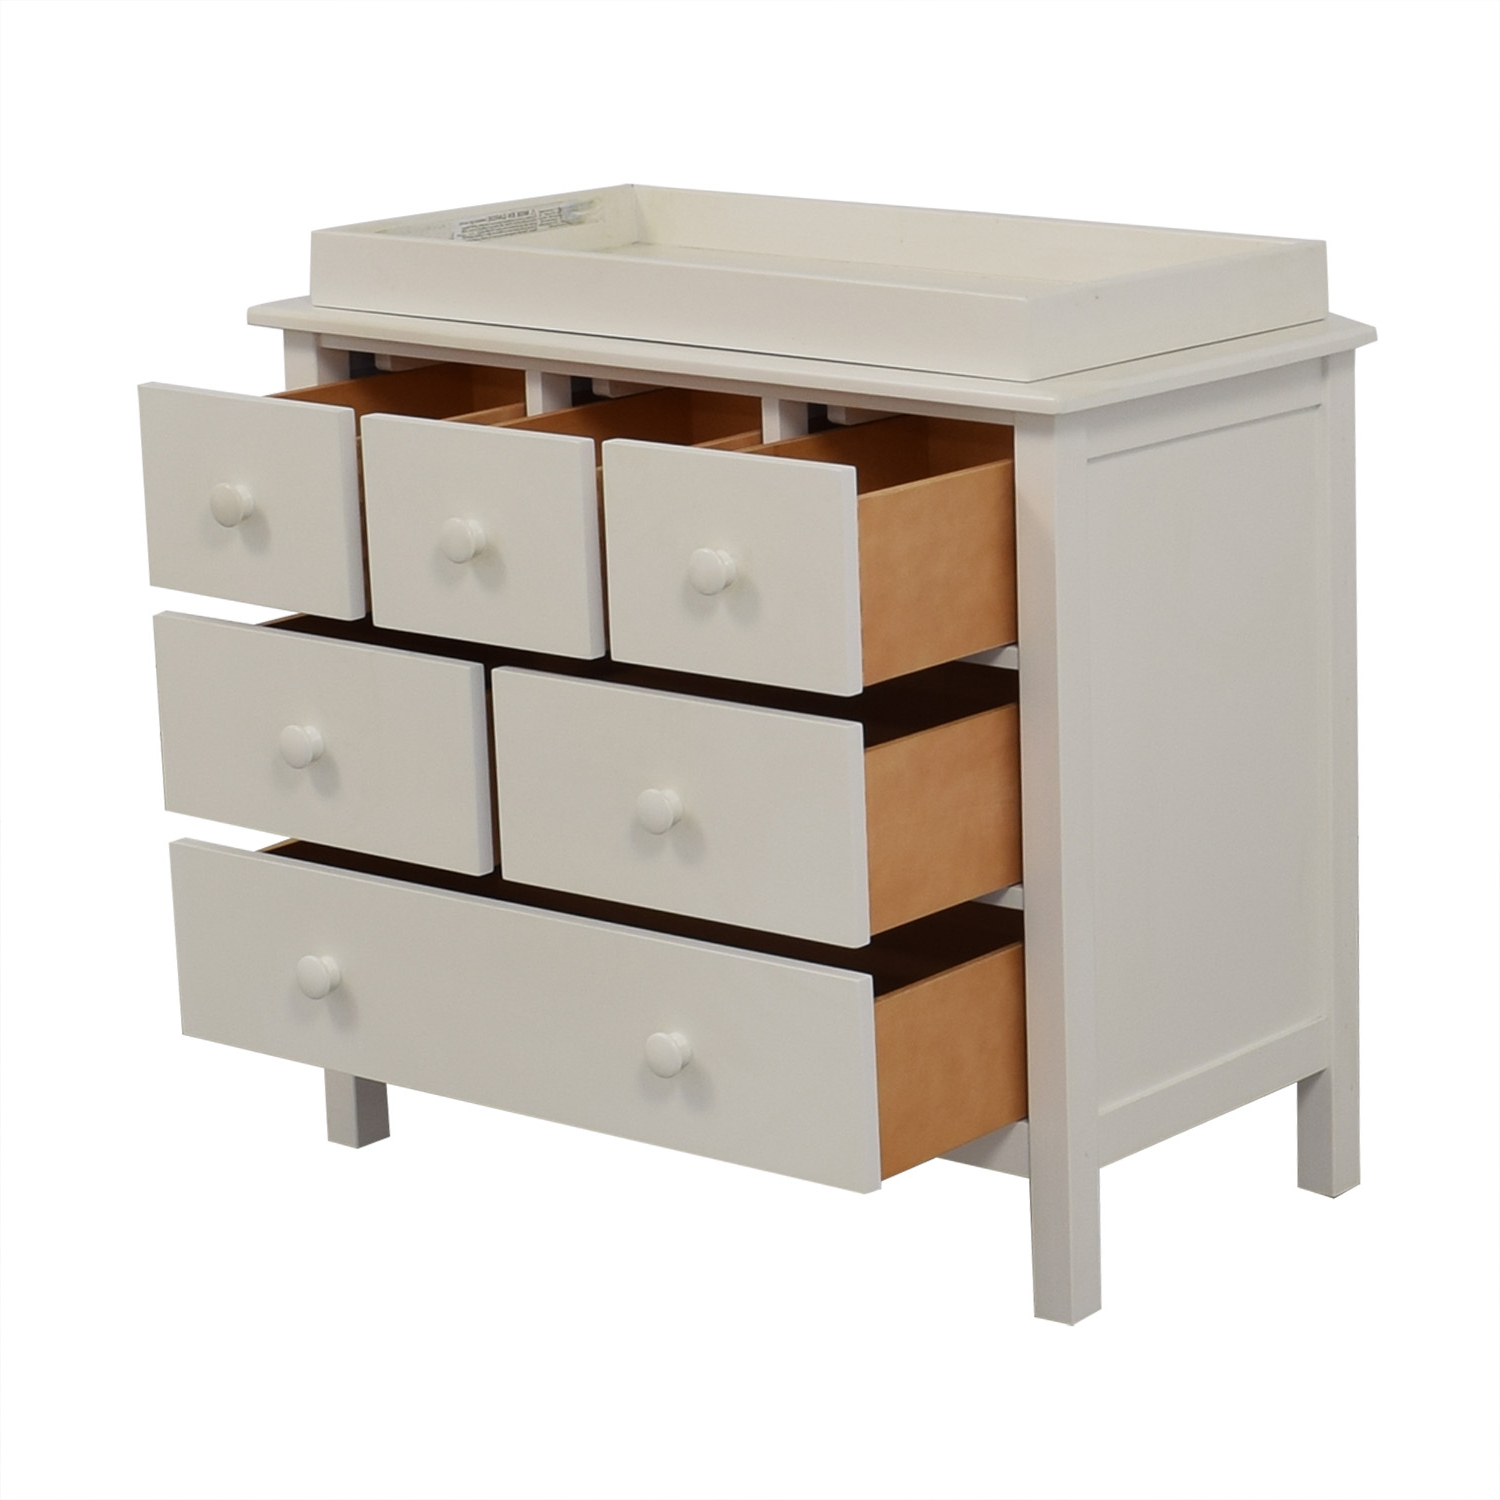 [%72% Off – Pottery Barn Kids Pottery Barn Kids Kendall Dresser And Changing Table / Storage Pertaining To Well Liked Kendall Sideboards|kendall Sideboards Regarding Preferred 72% Off – Pottery Barn Kids Pottery Barn Kids Kendall Dresser And Changing Table / Storage|2020 Kendall Sideboards Pertaining To 72% Off – Pottery Barn Kids Pottery Barn Kids Kendall Dresser And Changing Table / Storage|2020 72% Off – Pottery Barn Kids Pottery Barn Kids Kendall Dresser And Changing Table / Storage For Kendall Sideboards%] (View 17 of 20)